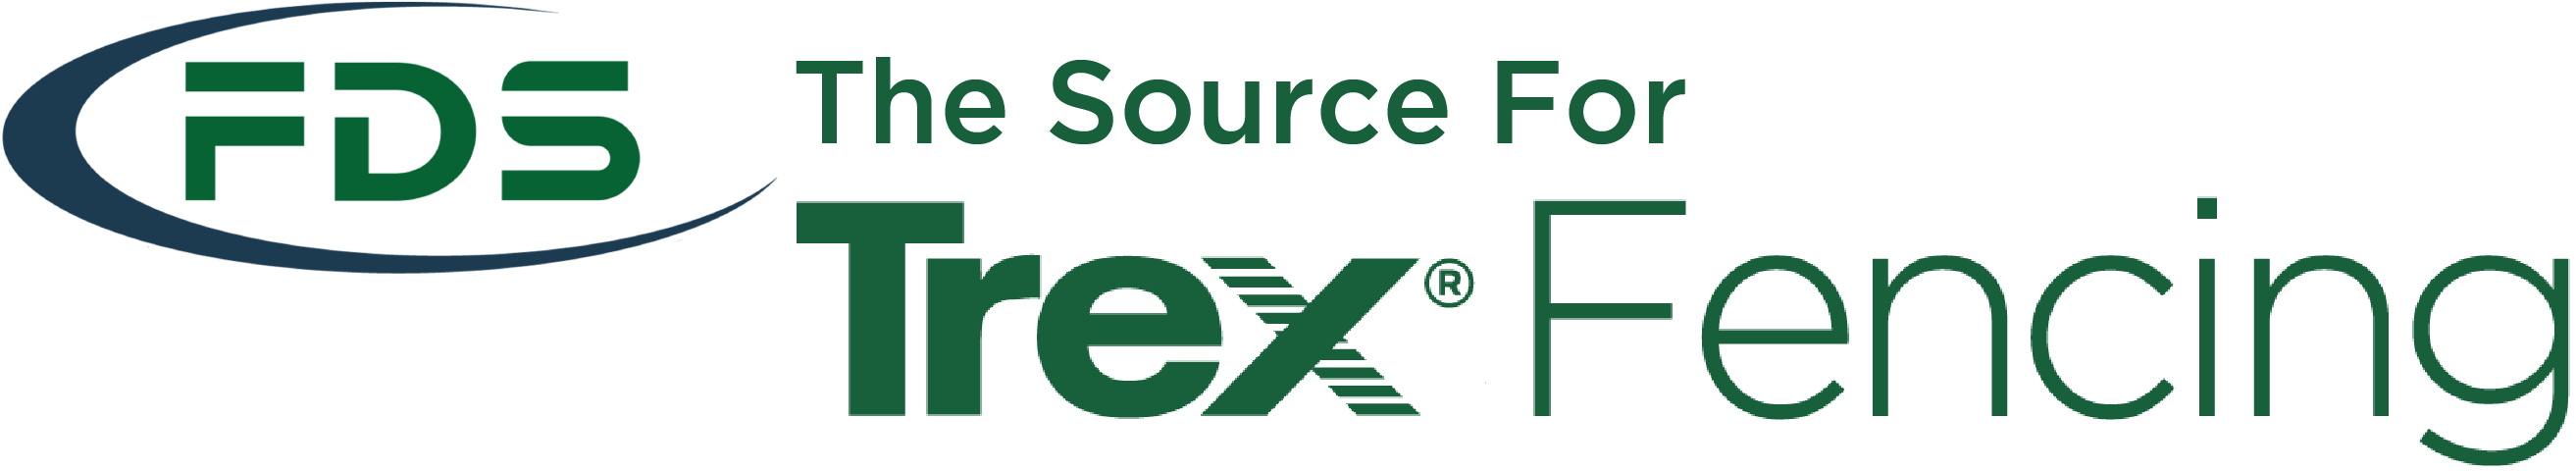 FDS, the Source for Trex Fencing logo